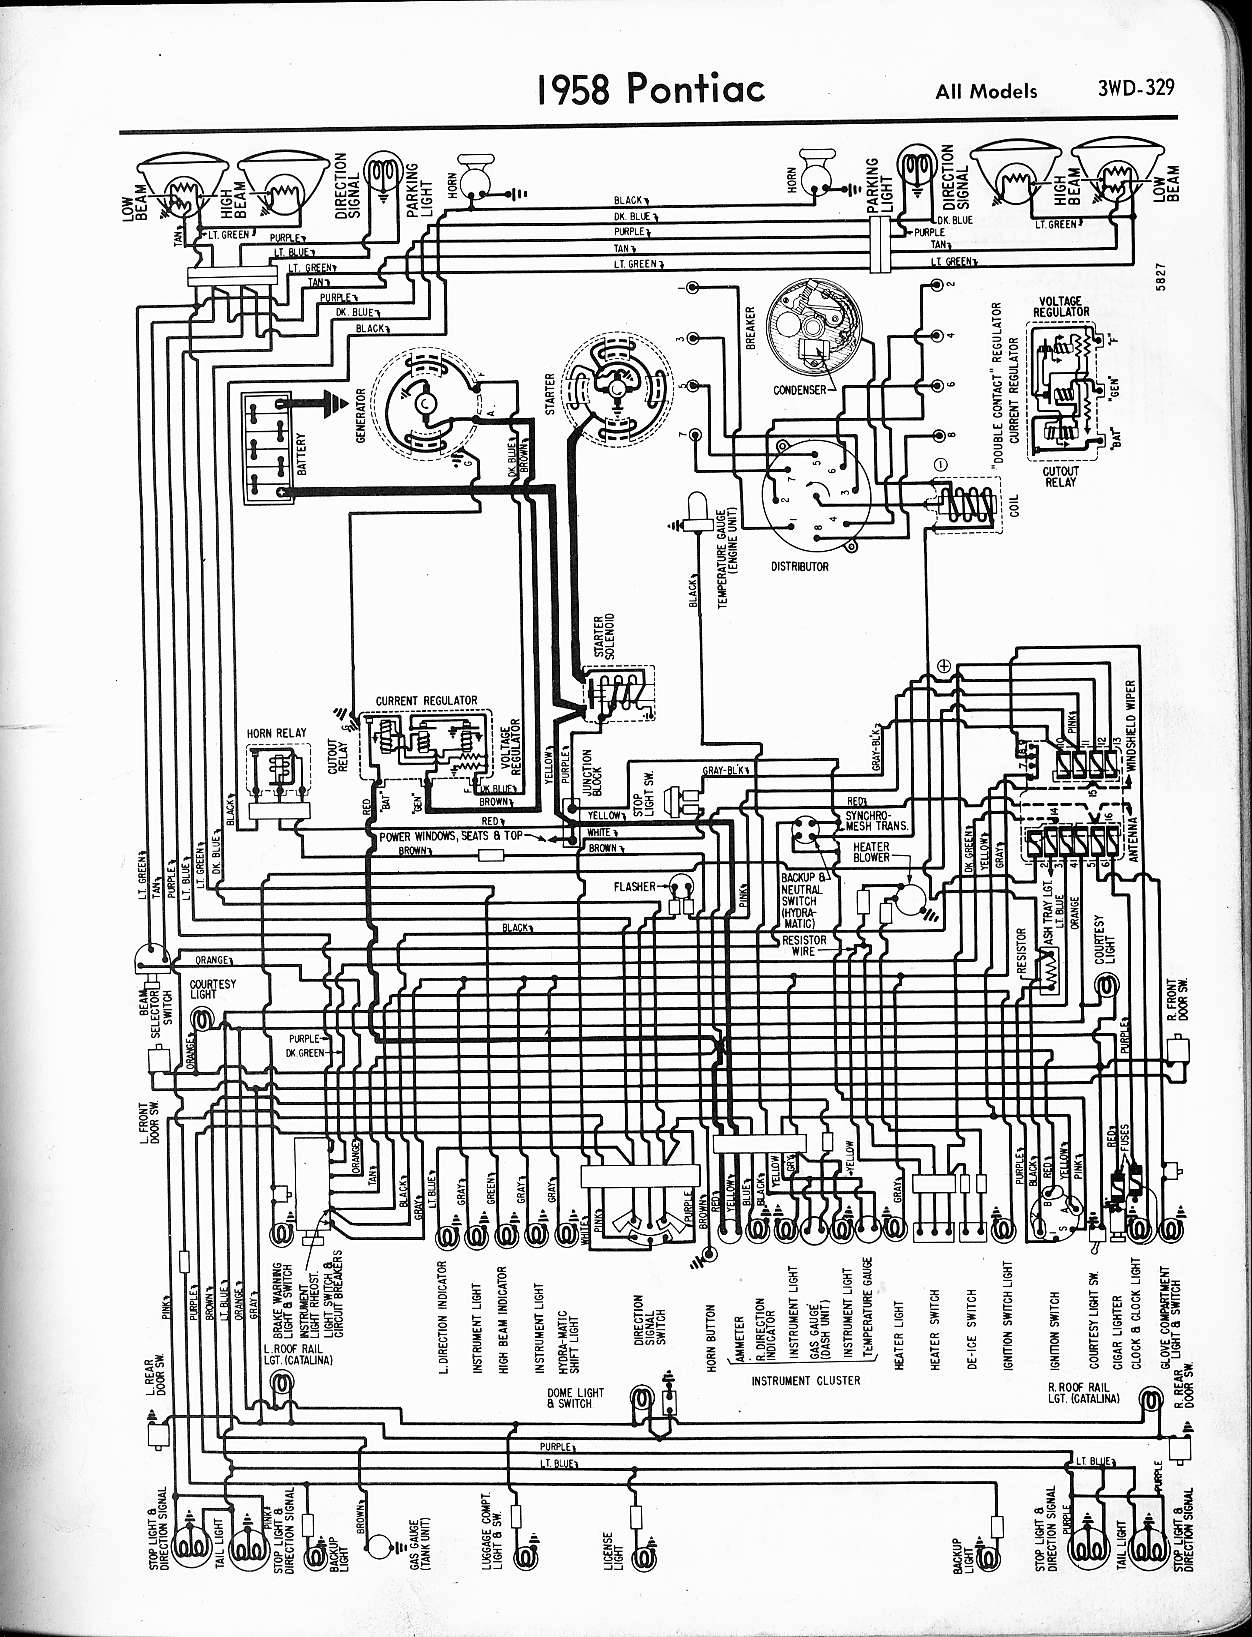 hight resolution of 1958 pontiac wiring diagram wiring diagram third level rh 15 16 11 jacobwinterstein com 1969 pontiac firebird wiring diagram 1969 pontiac grand prix wiring